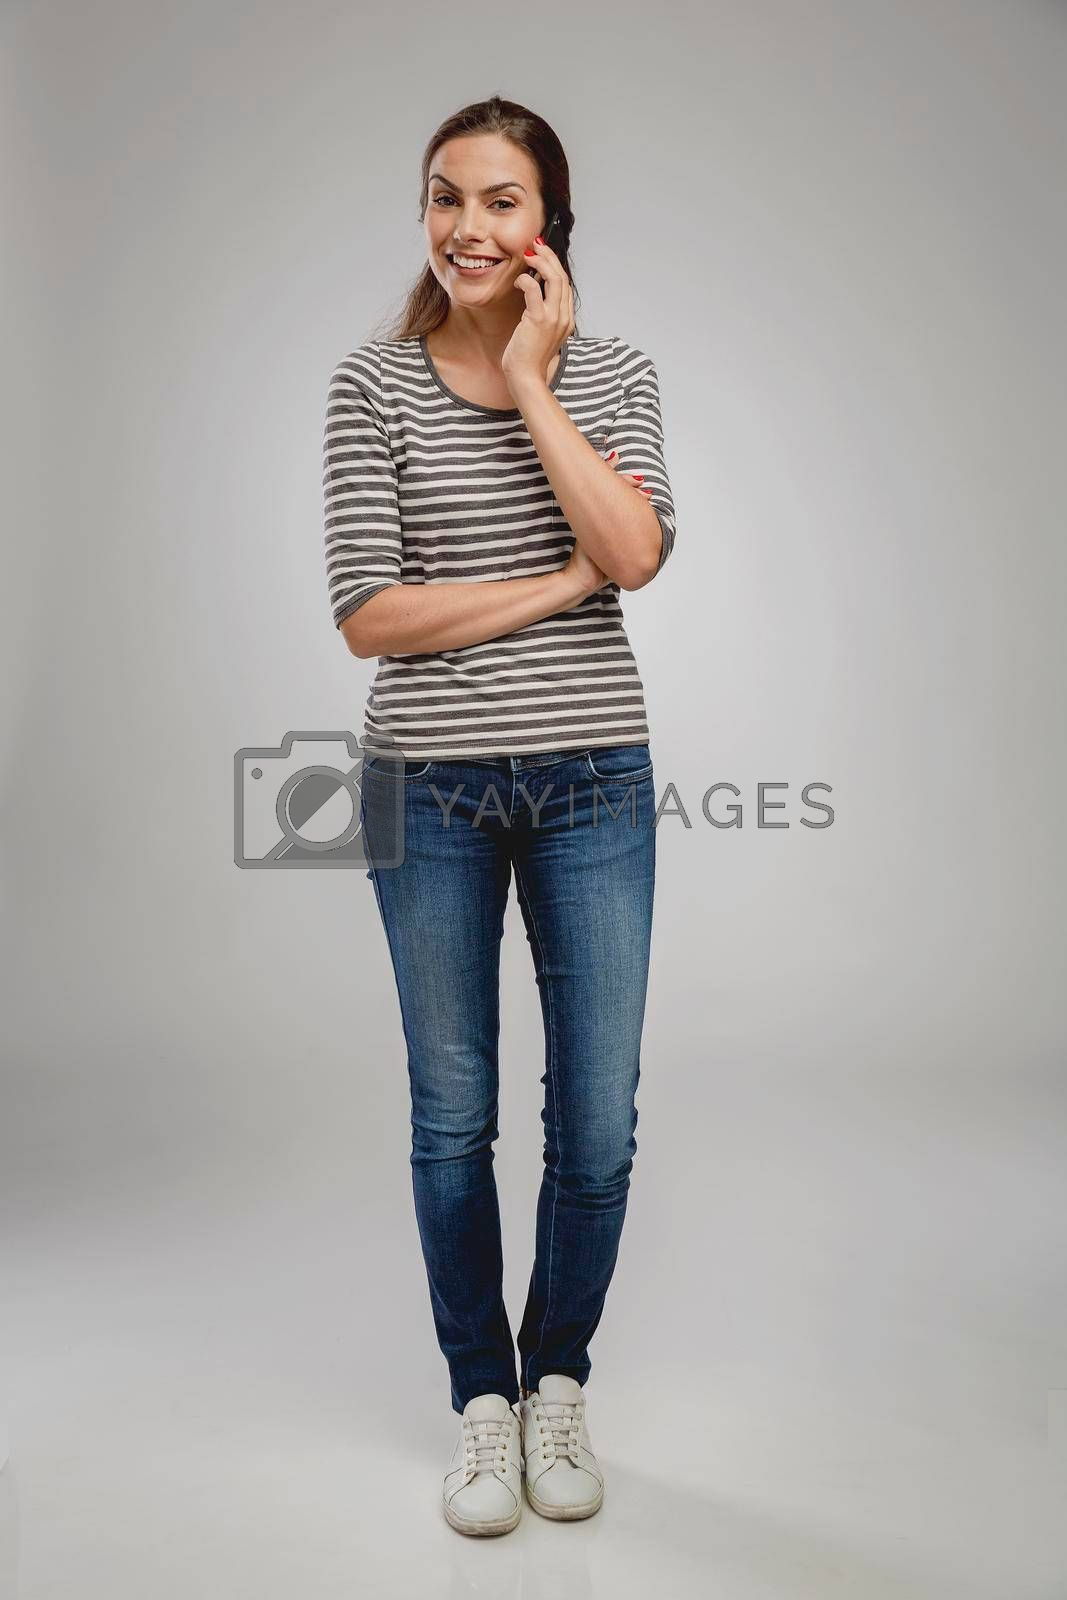 Royalty free image of Beautiful woman talking on phone by Iko